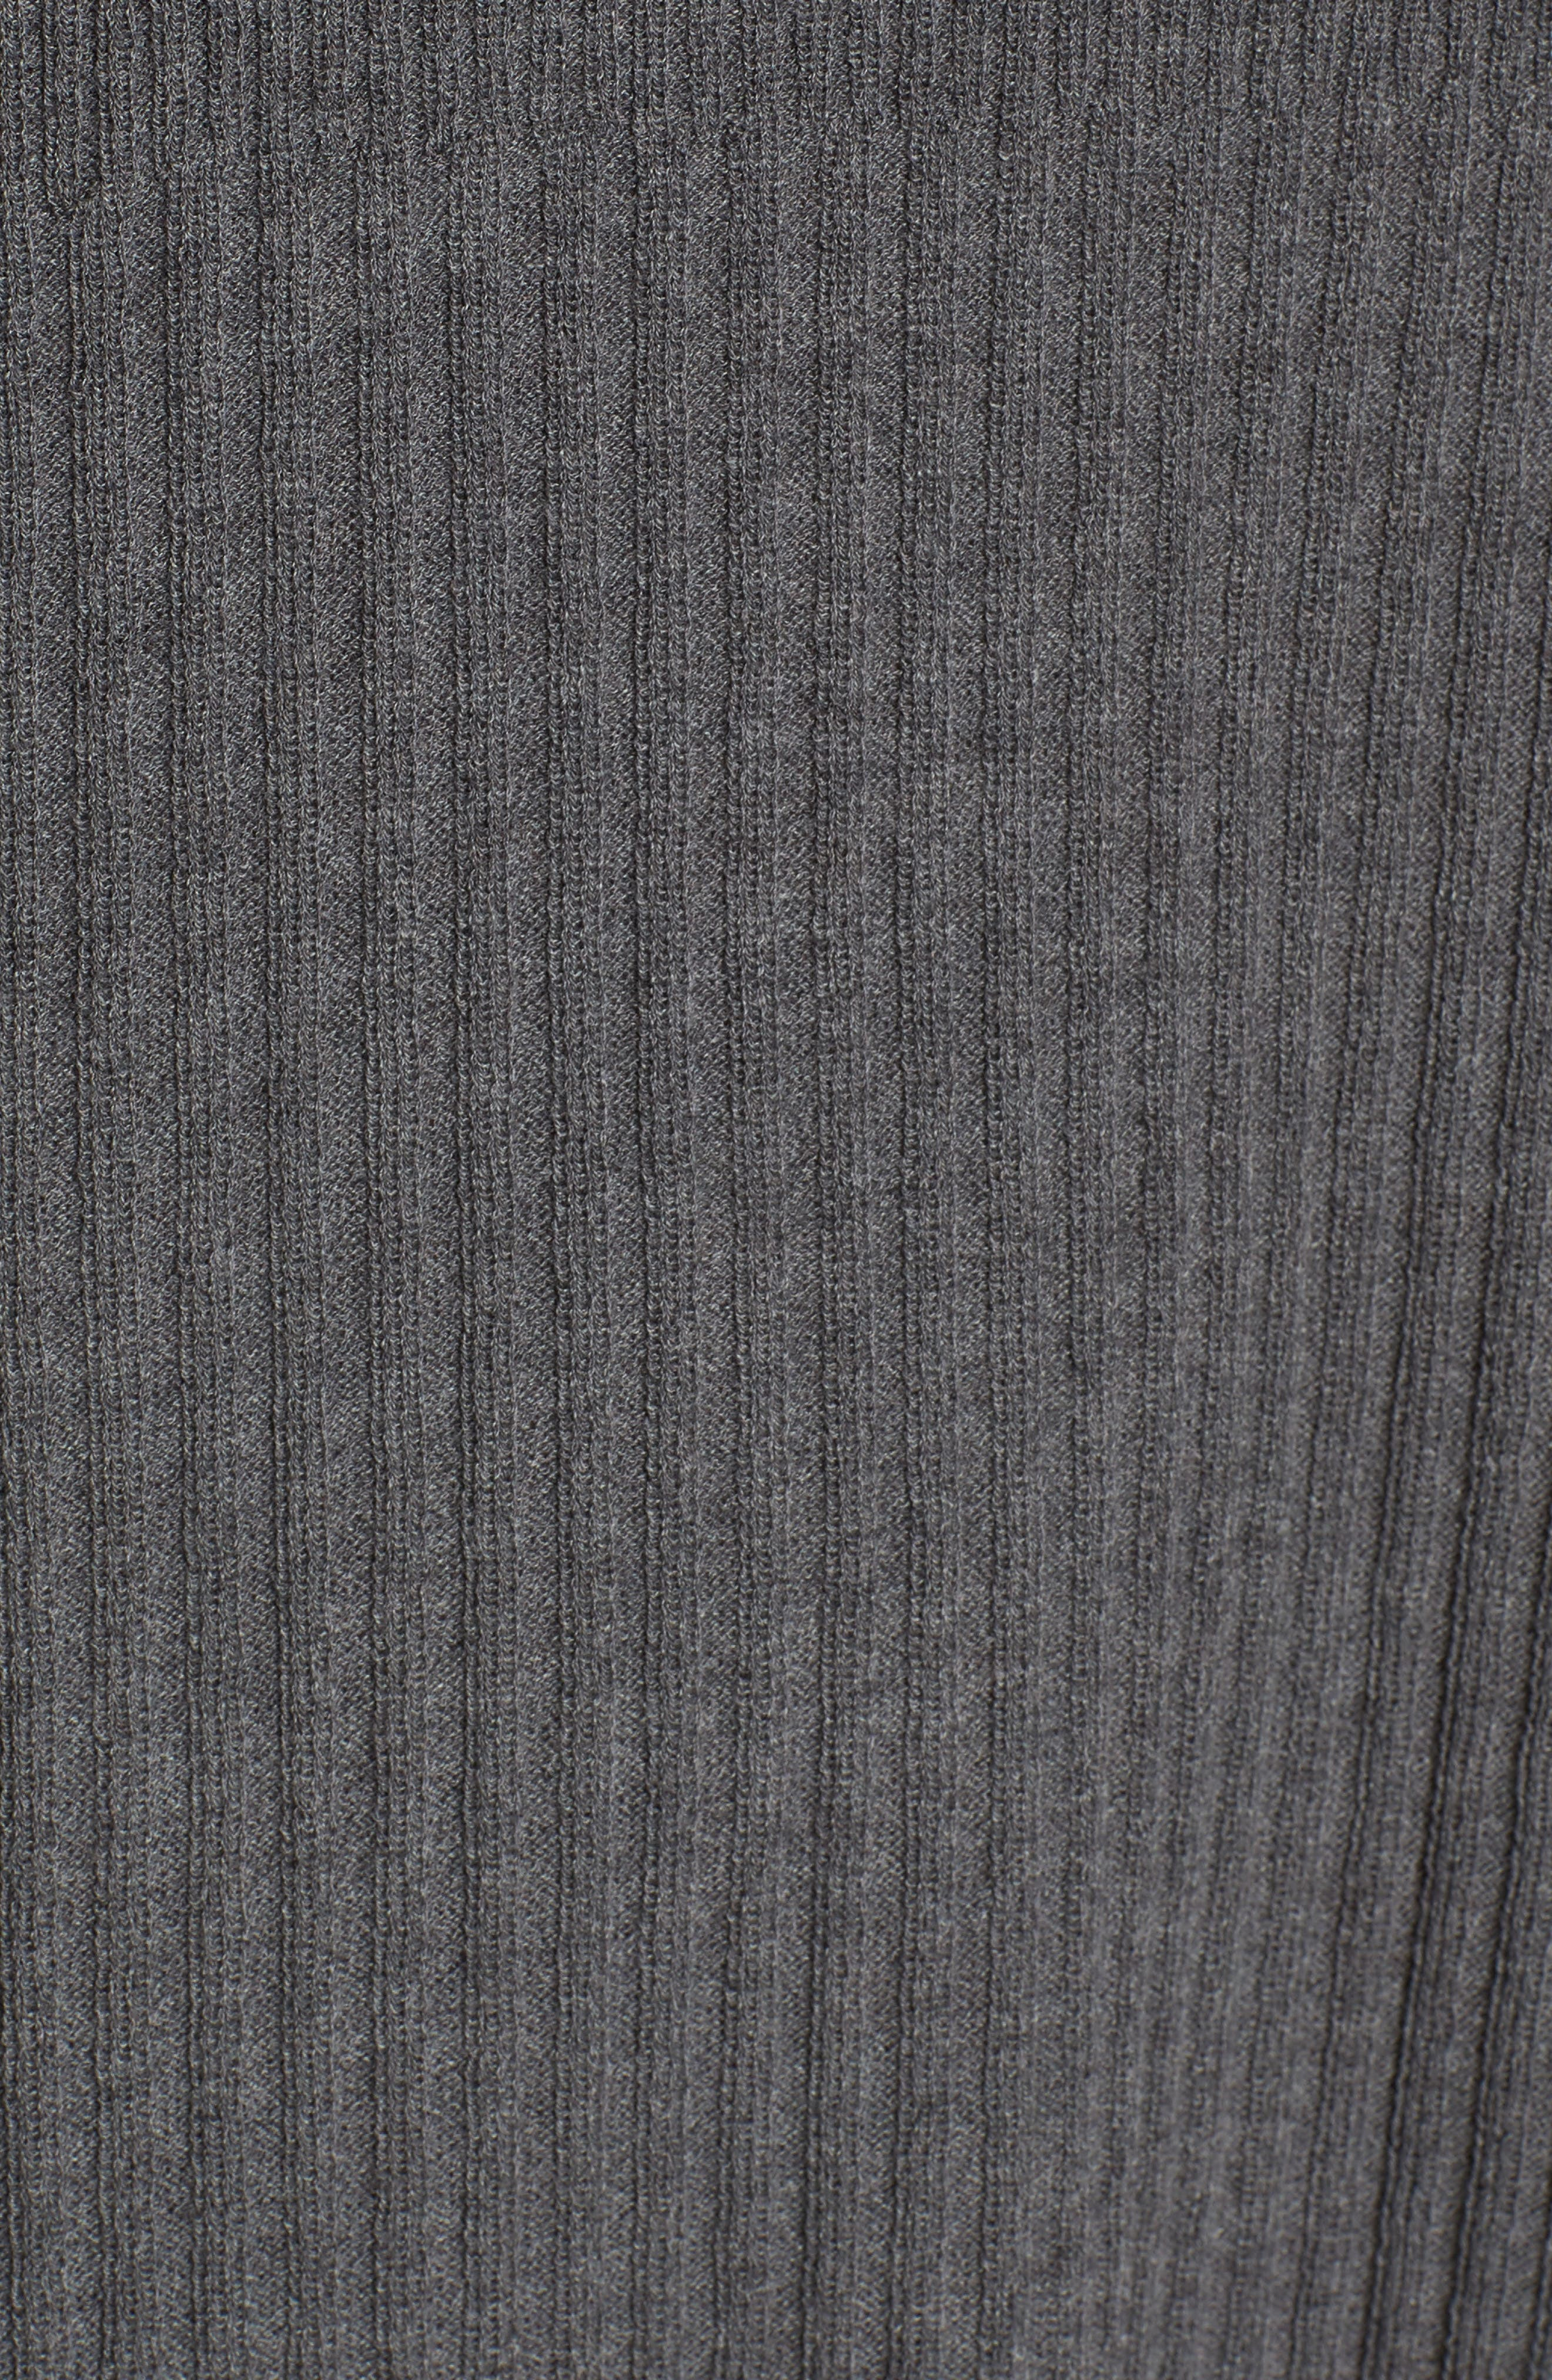 Ribbed Wool Sweater Dress,                             Alternate thumbnail 5, color,                             Bark